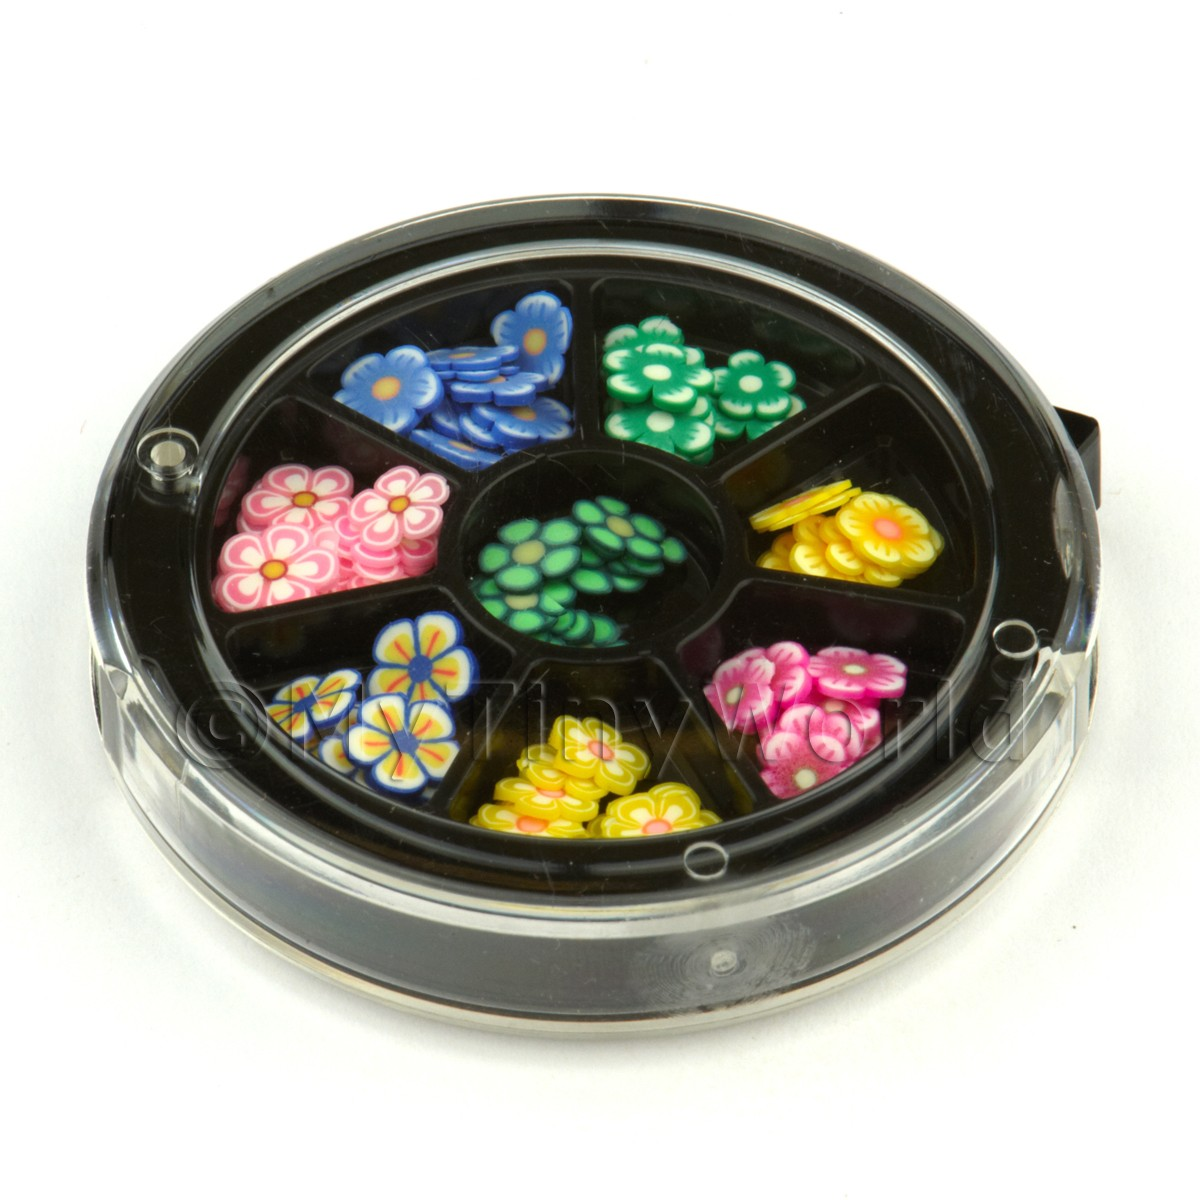 80 Assorted Nail Art Flowers Slices In a Wheel